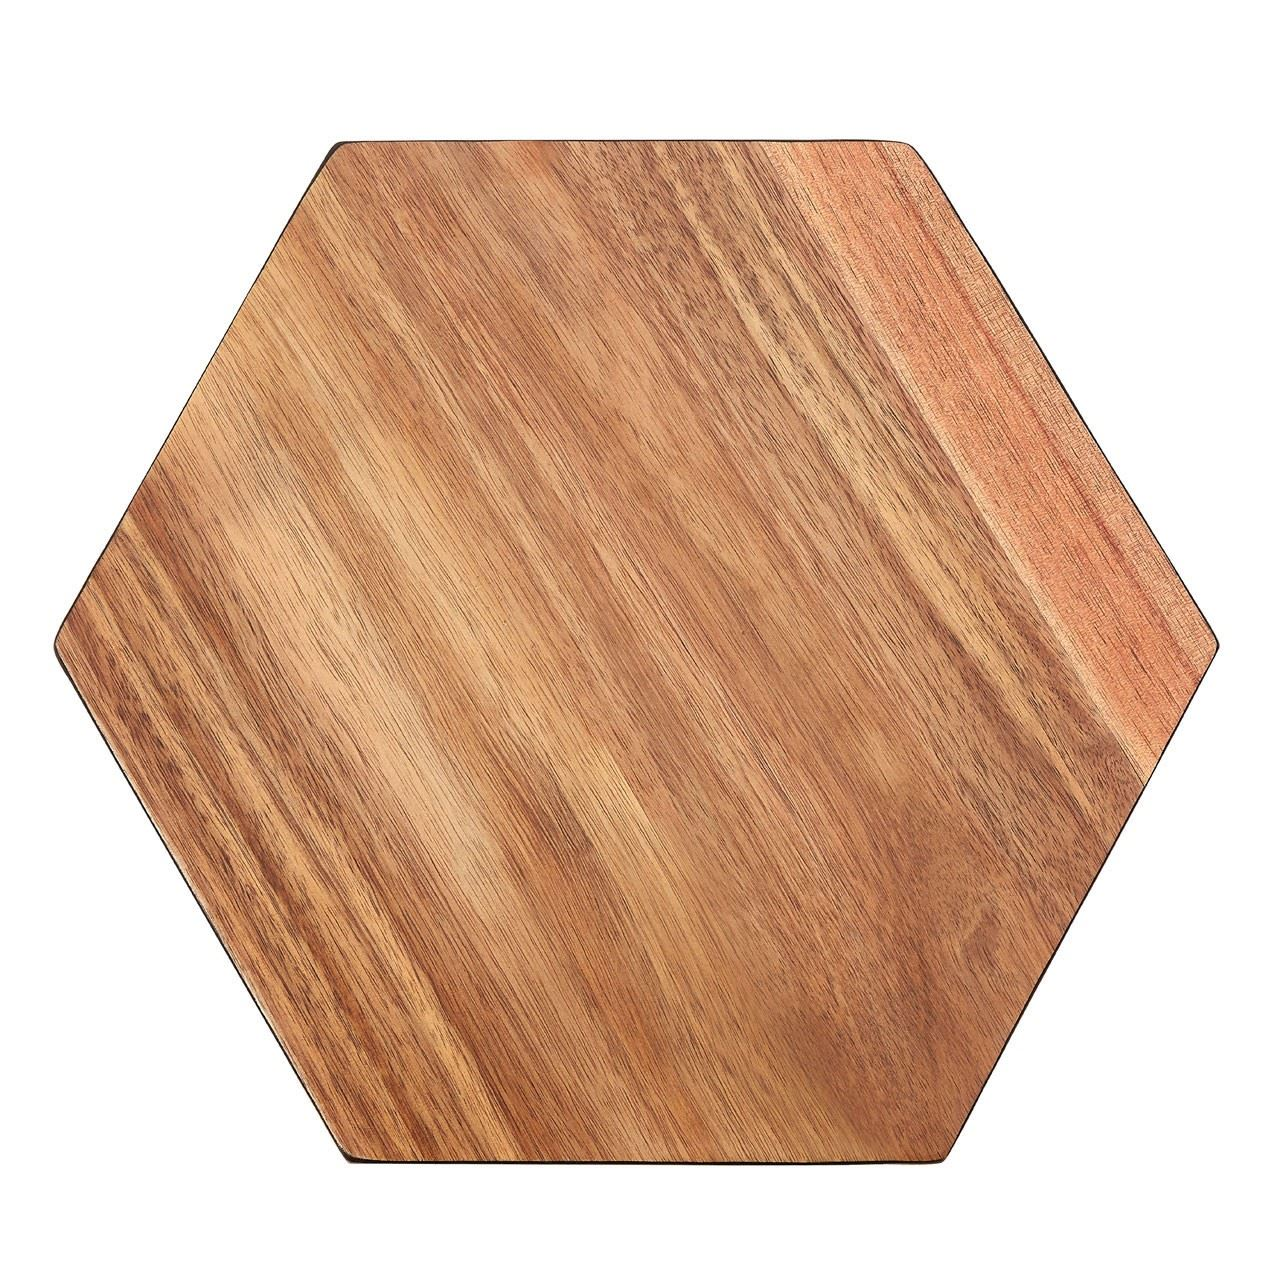 Chopping-Boards-Wooden-Cutting-Serving-Naturally-Antibacterial thumbnail 21